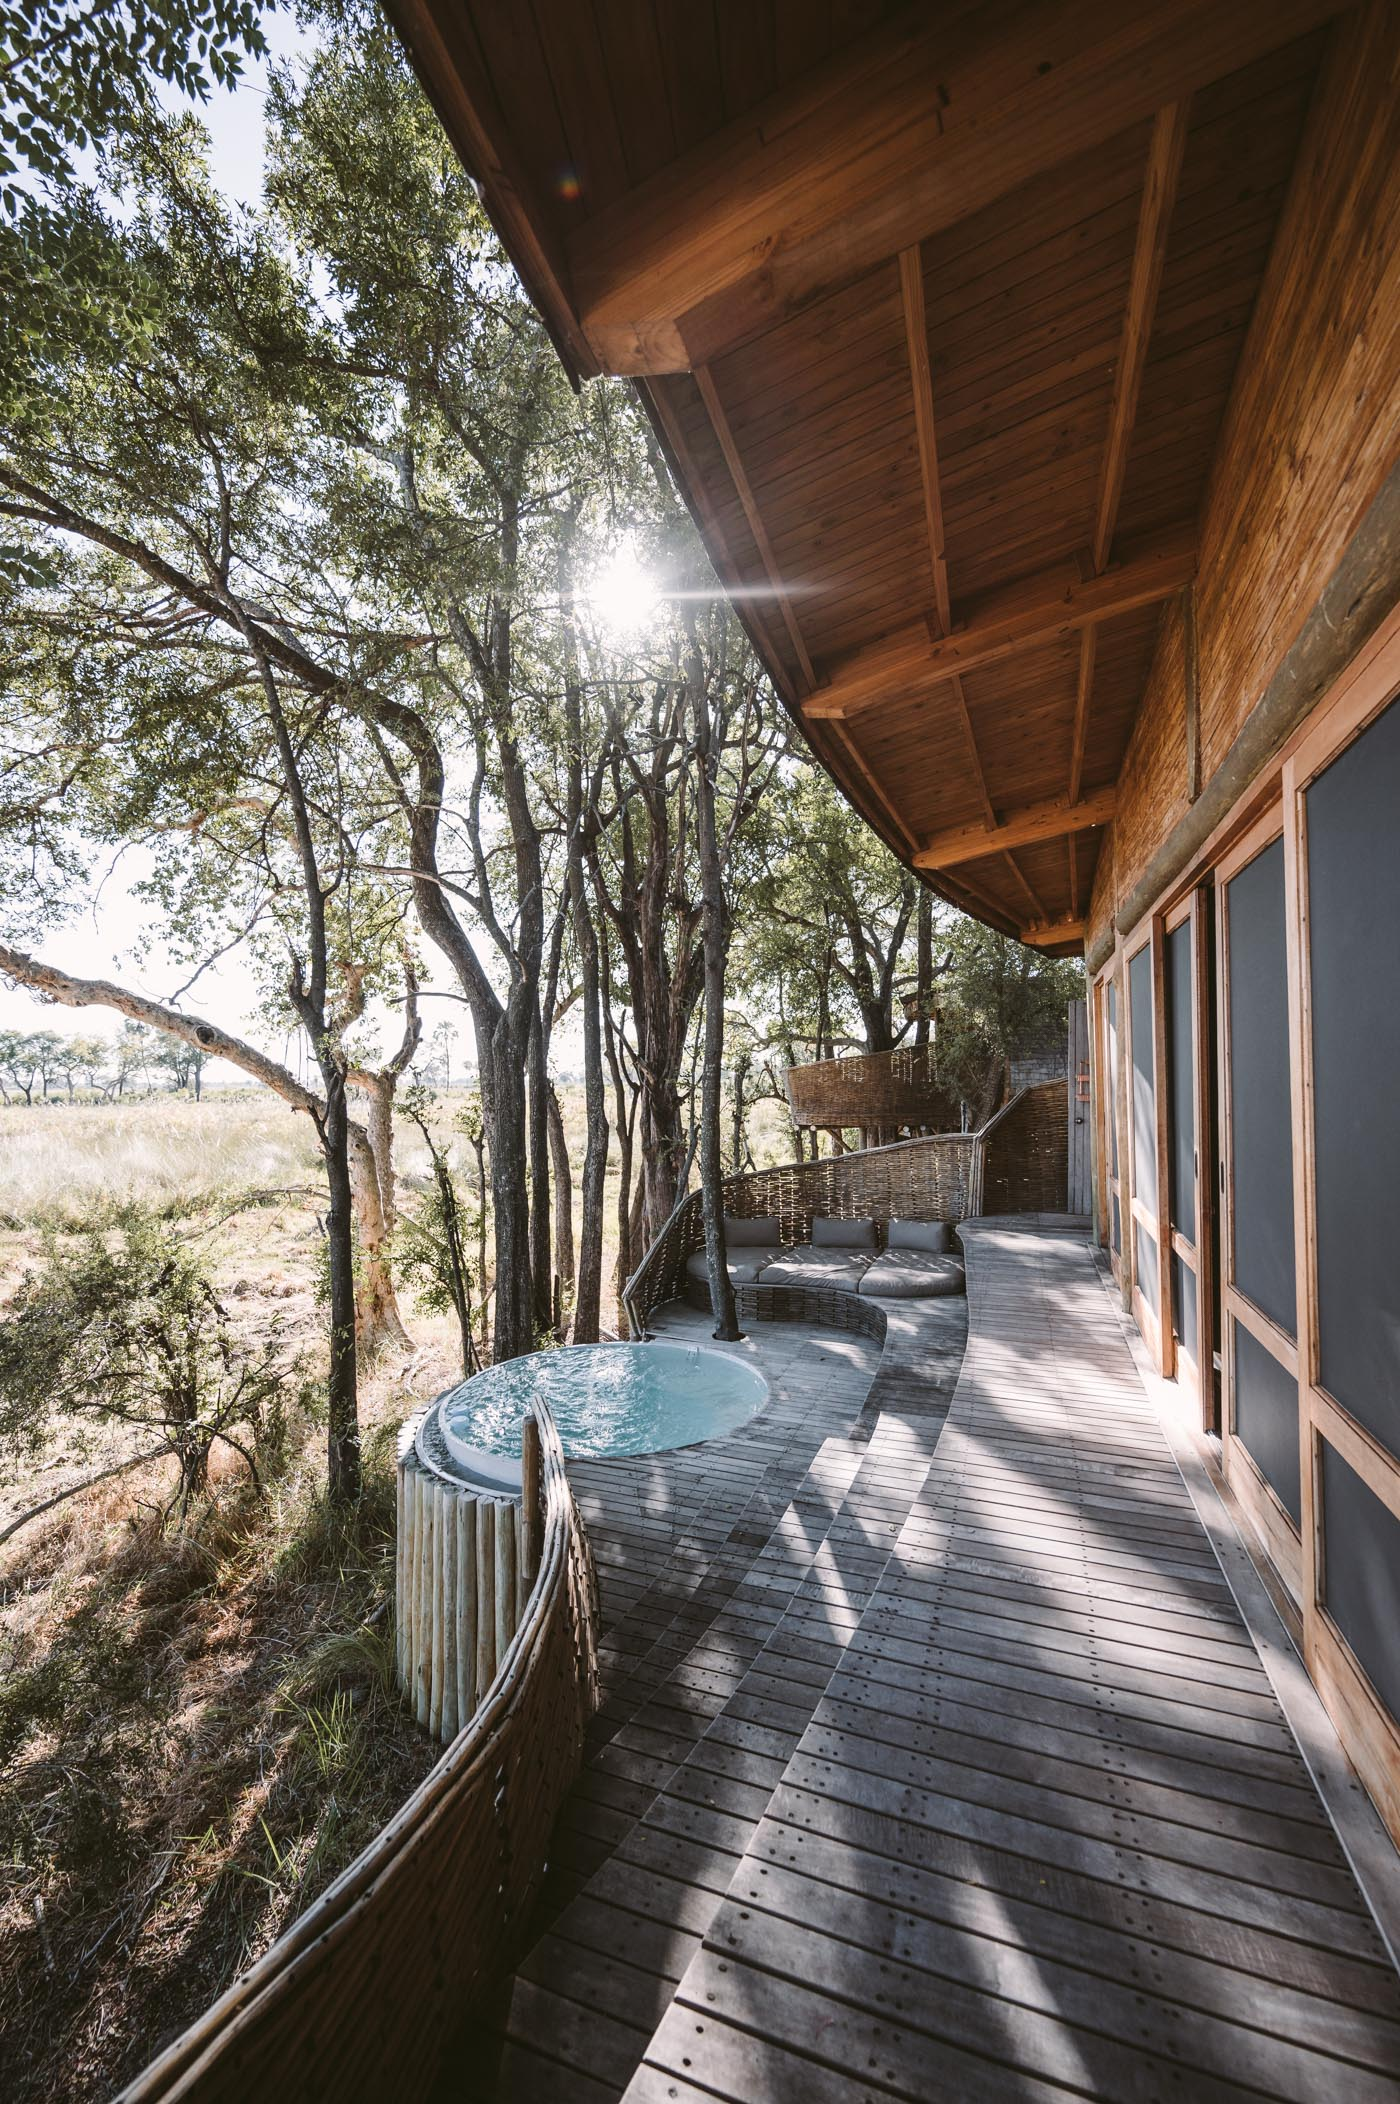 andBeyond Sandibe Okavango Delta Lodge private deck and plunge pool